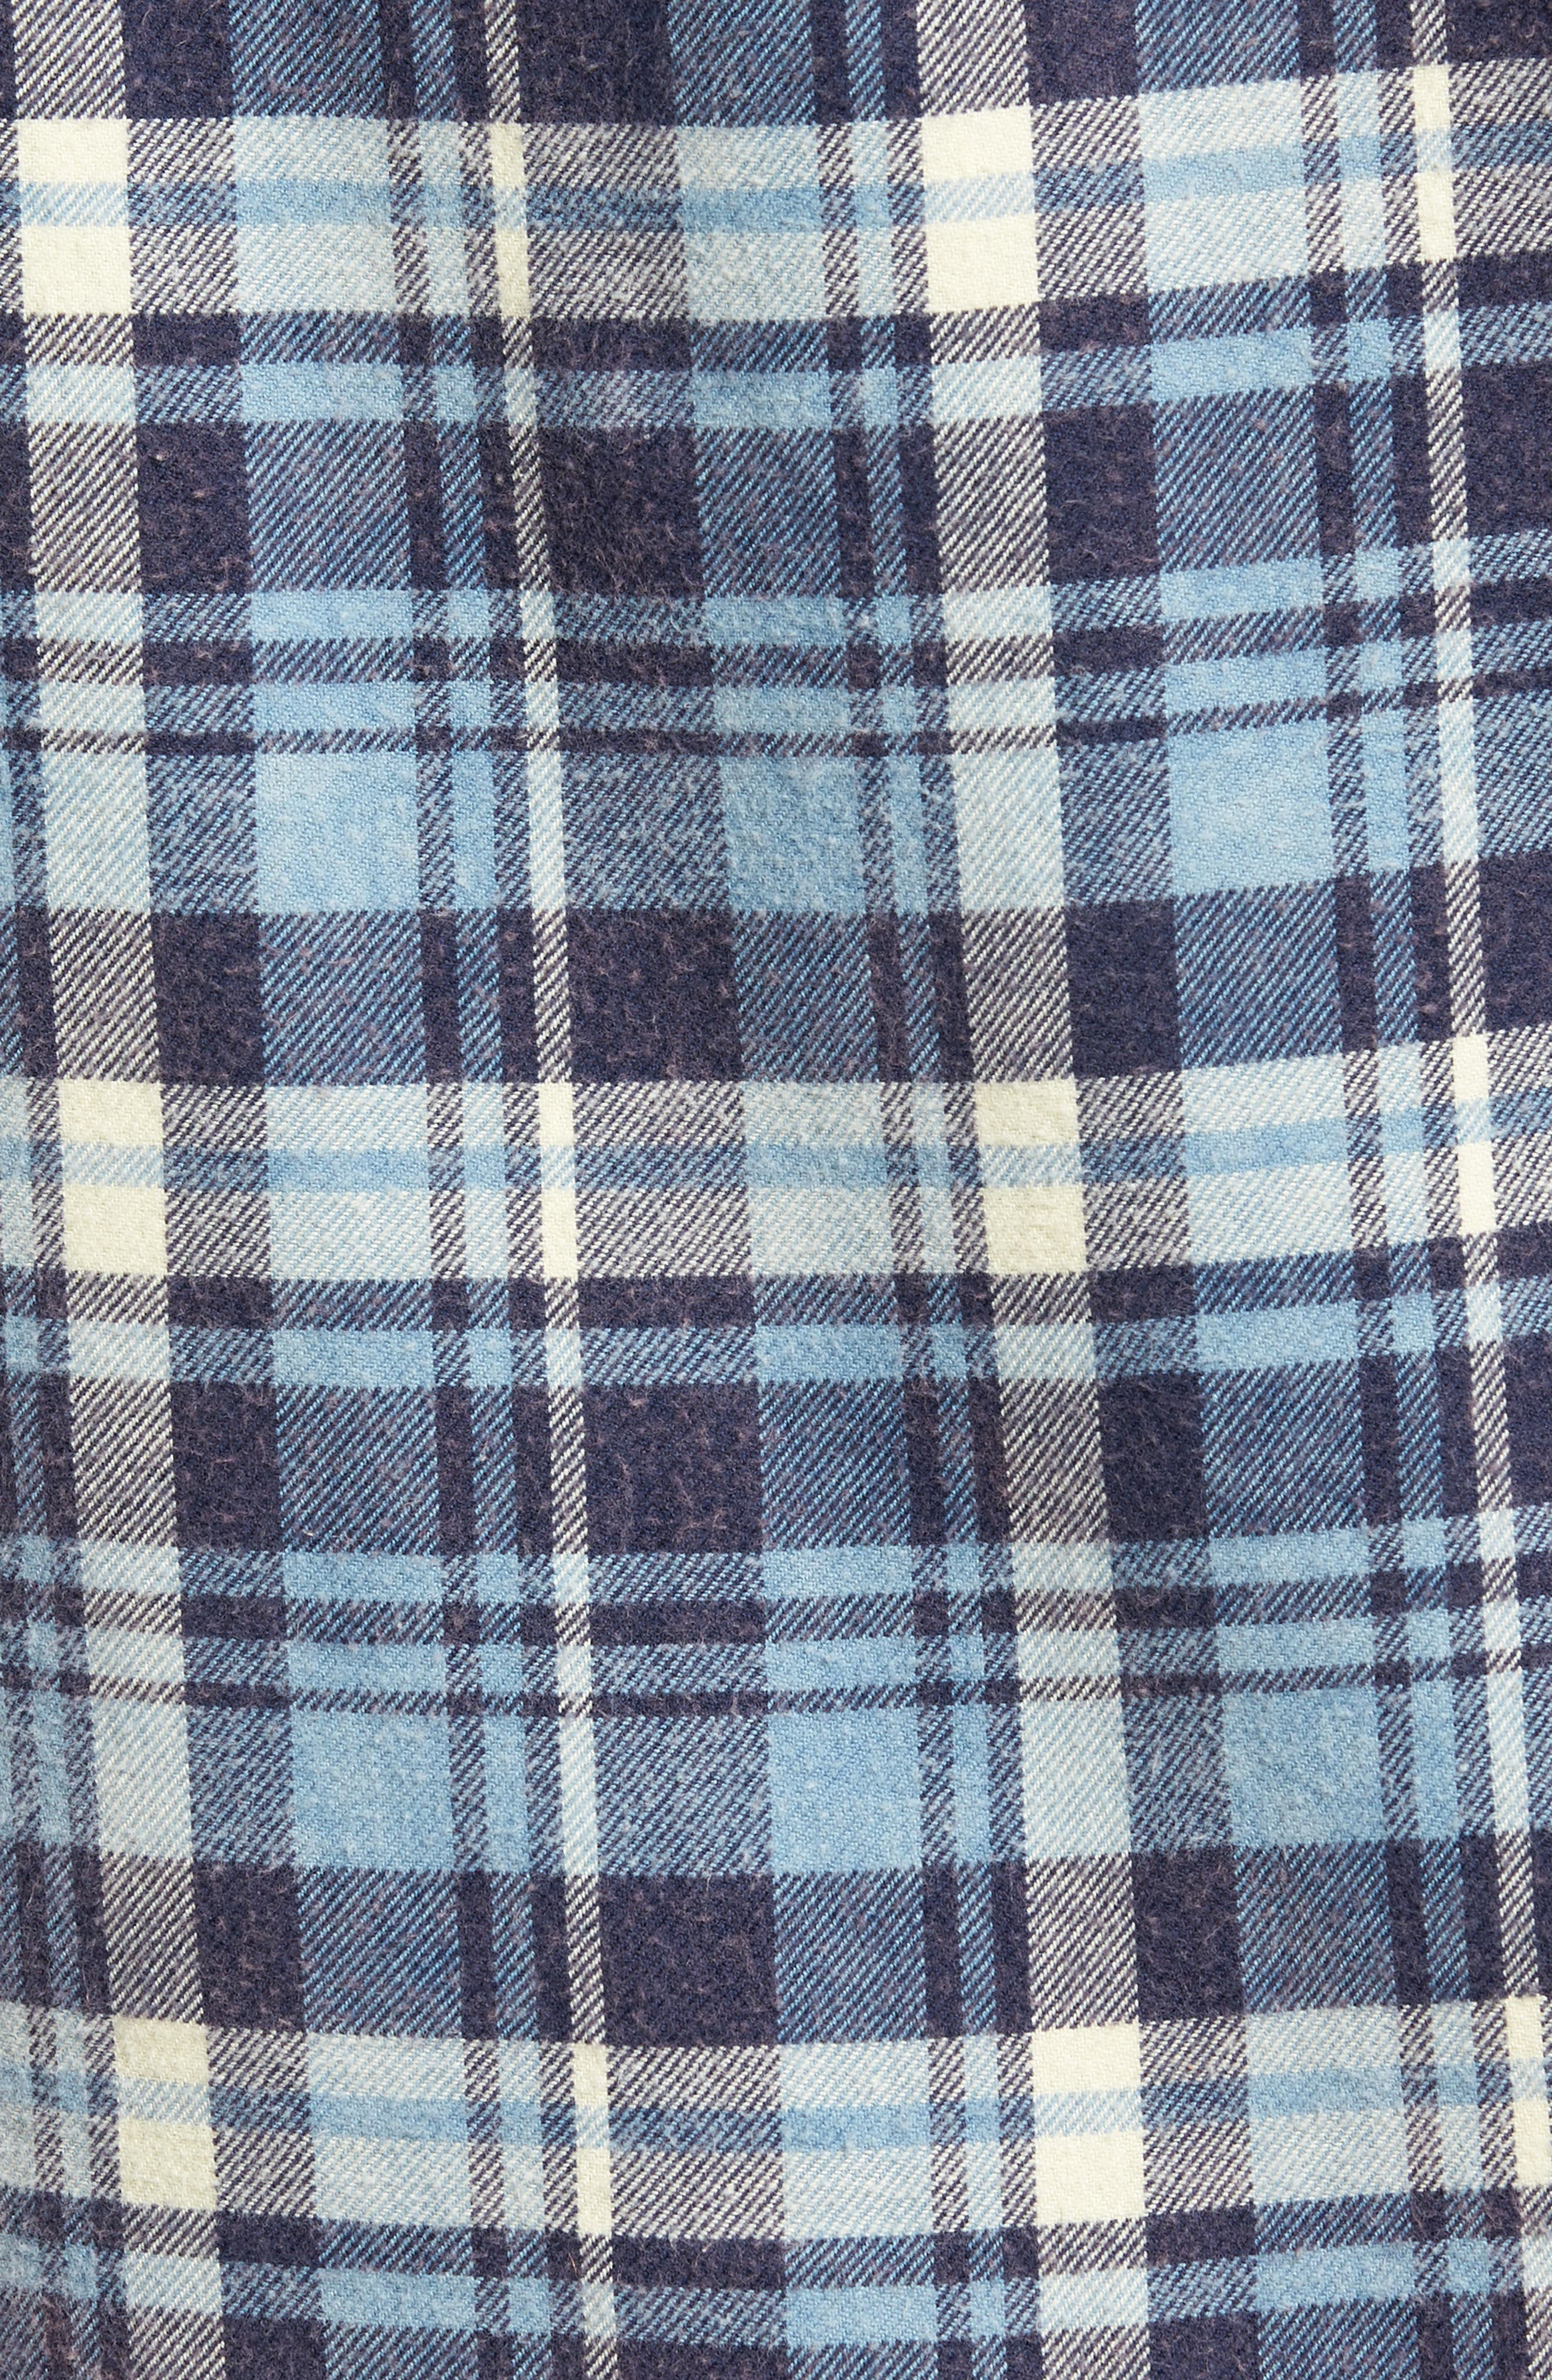 Plaid Flannel Shirt,                             Alternate thumbnail 5, color,                             420